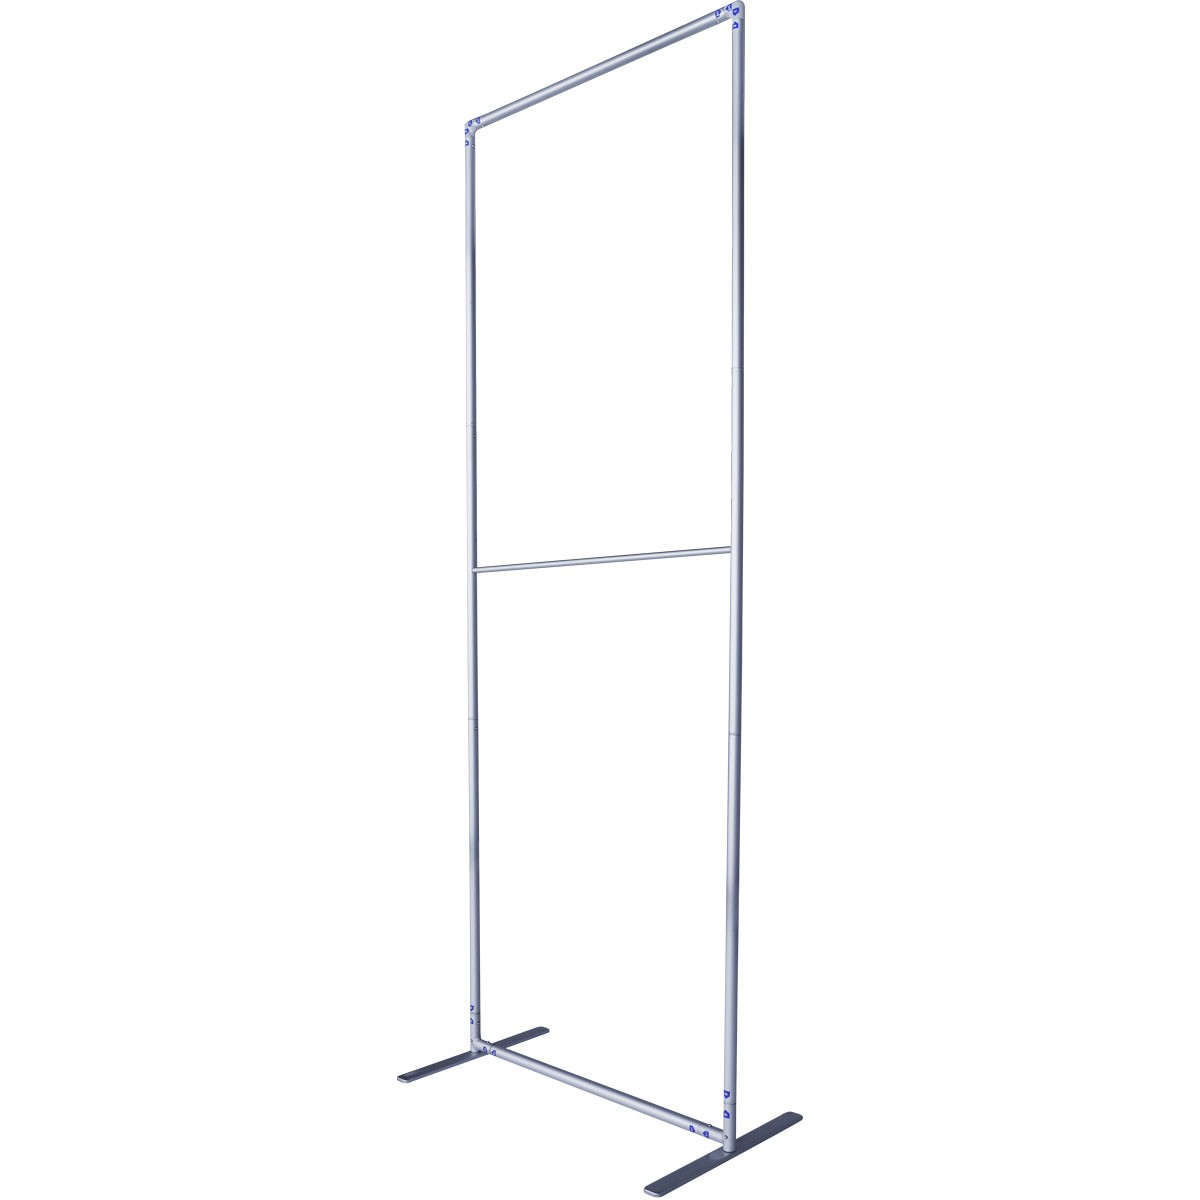 Hardware Frame for Economy Fabric Banner Stands - Tilted View